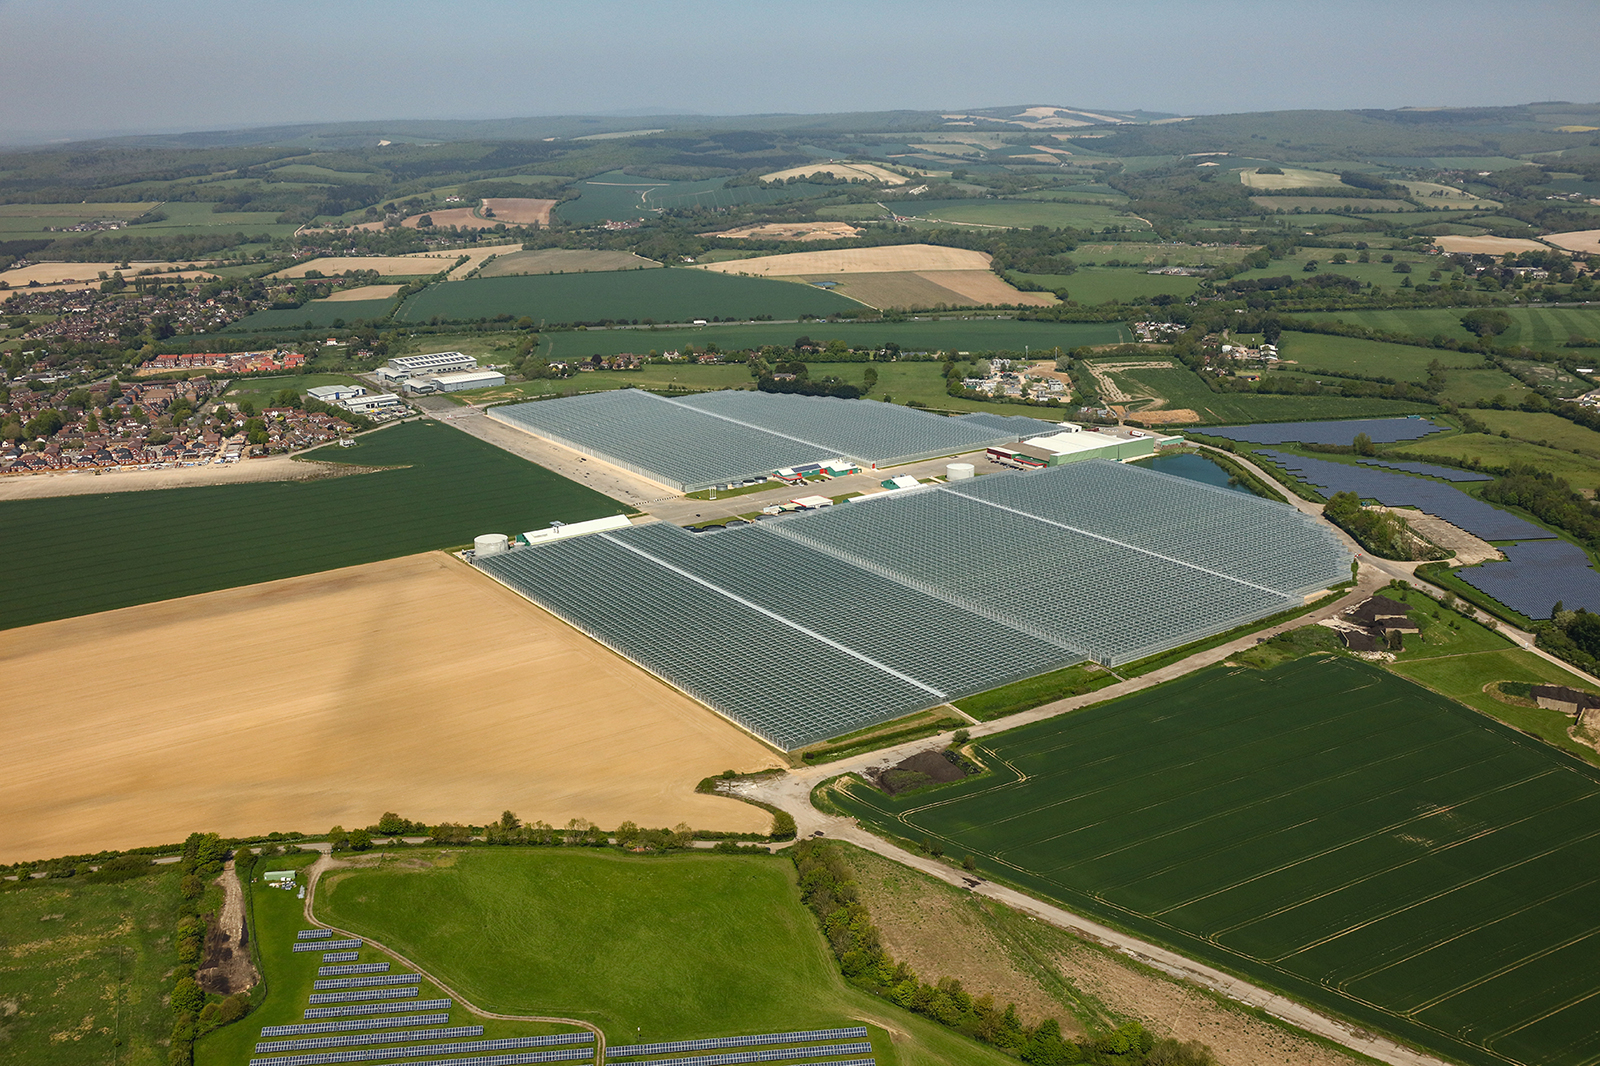 An arial photograph of the glasshouses on Tangmere Airfield Nurseries in the UK